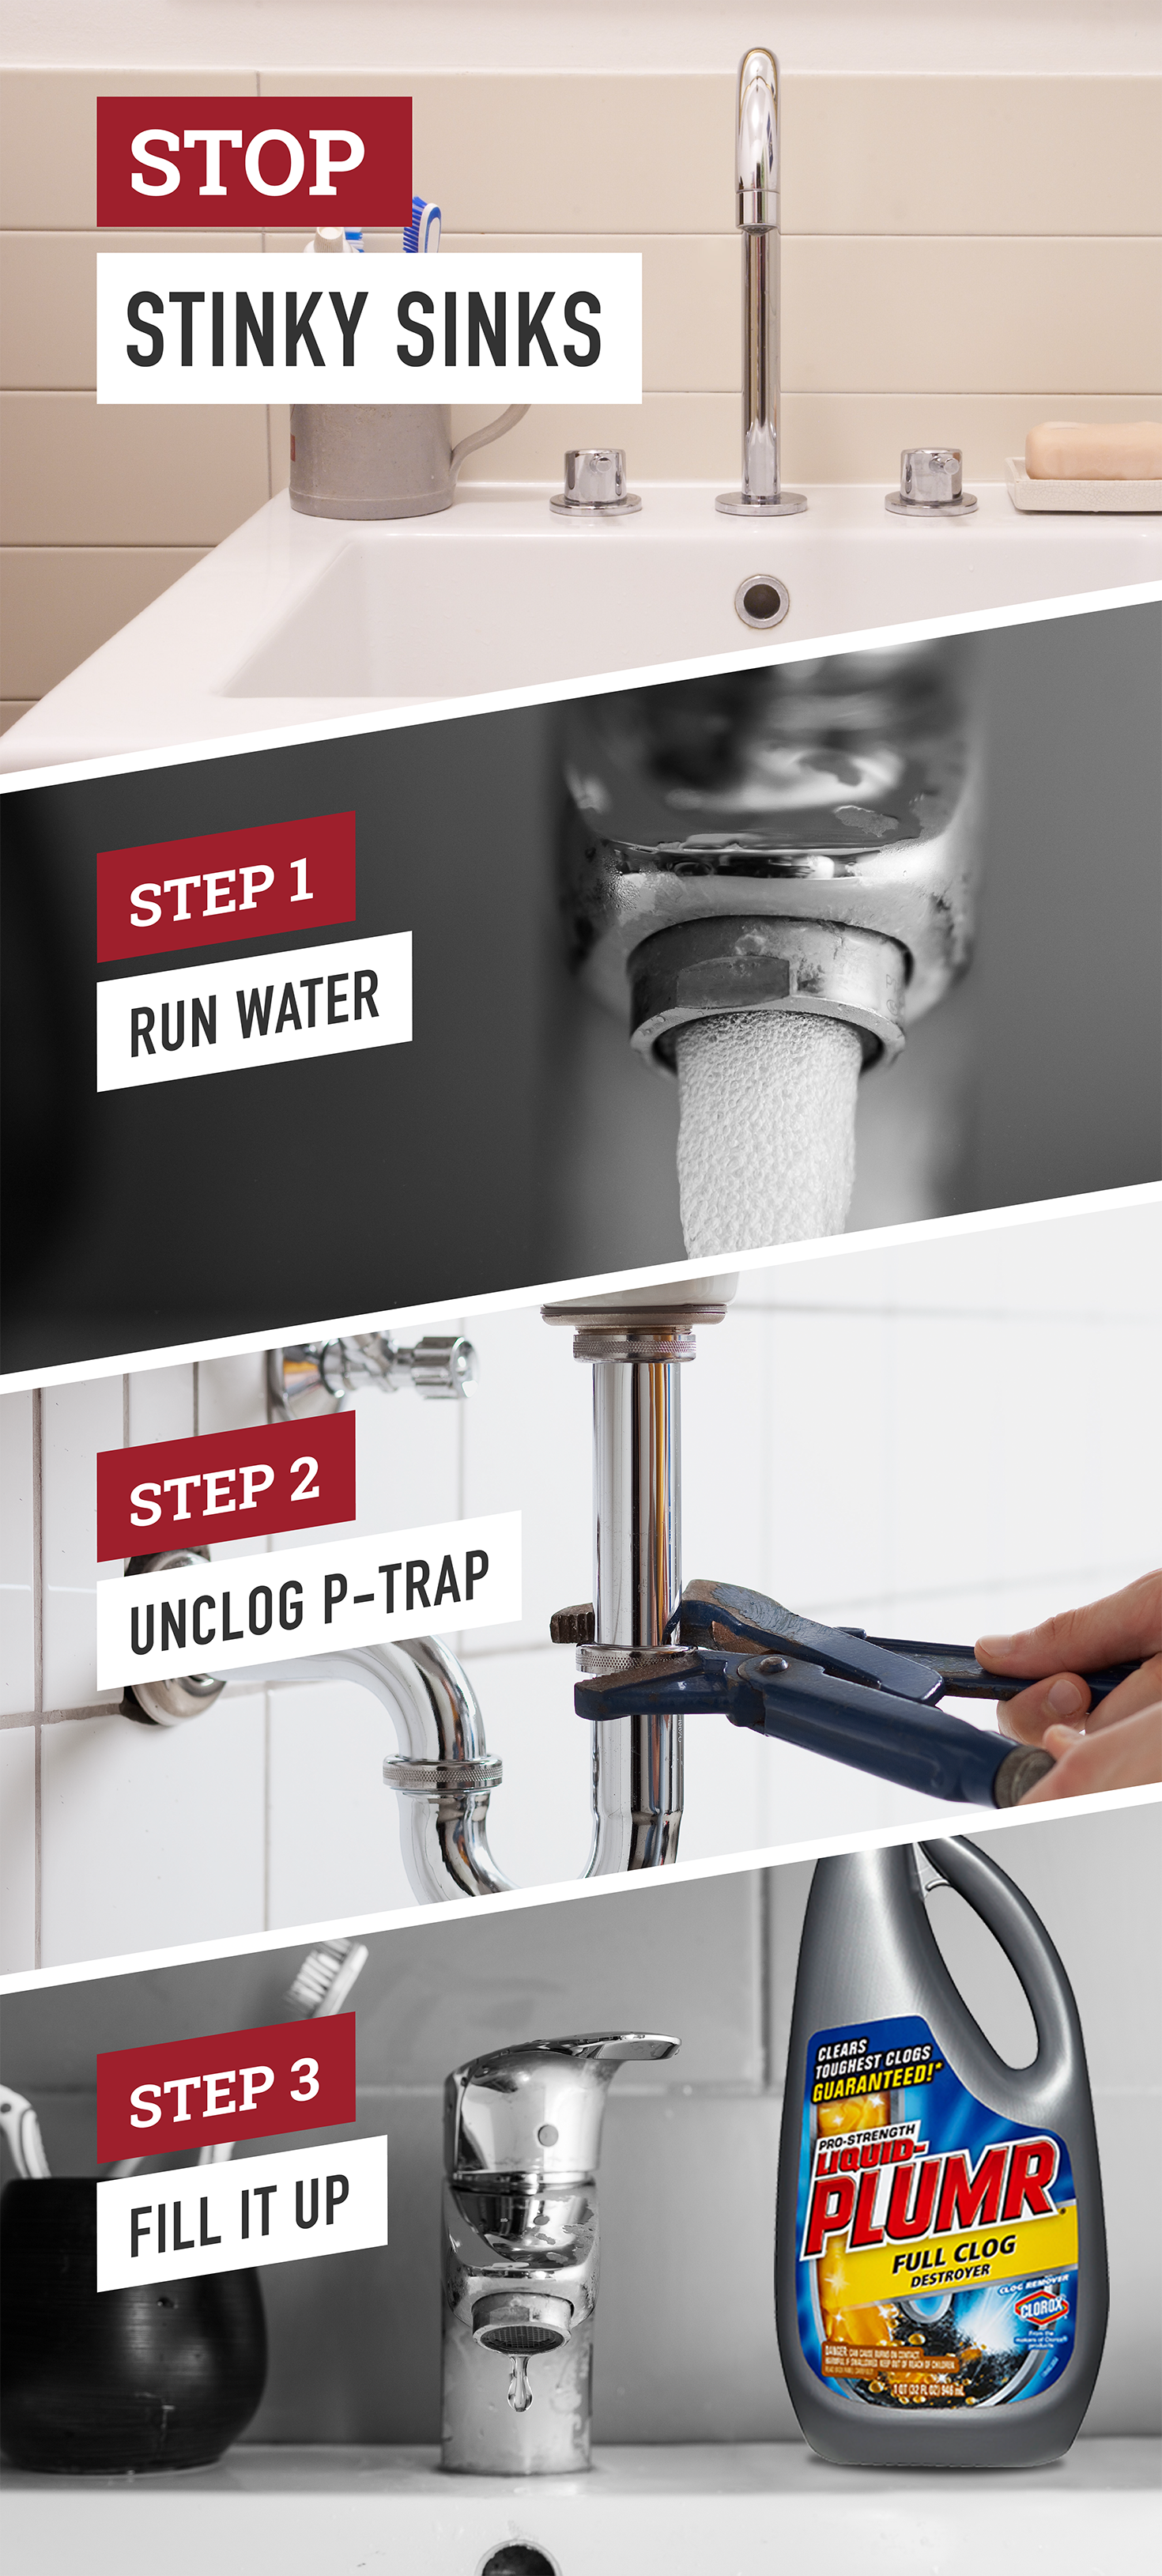 nobody wants their kitchen or bathroom sink smelling like the sewer  follow these simple steps nobody wants their kitchen or bathroom sink smelling like the      rh   pinterest co uk